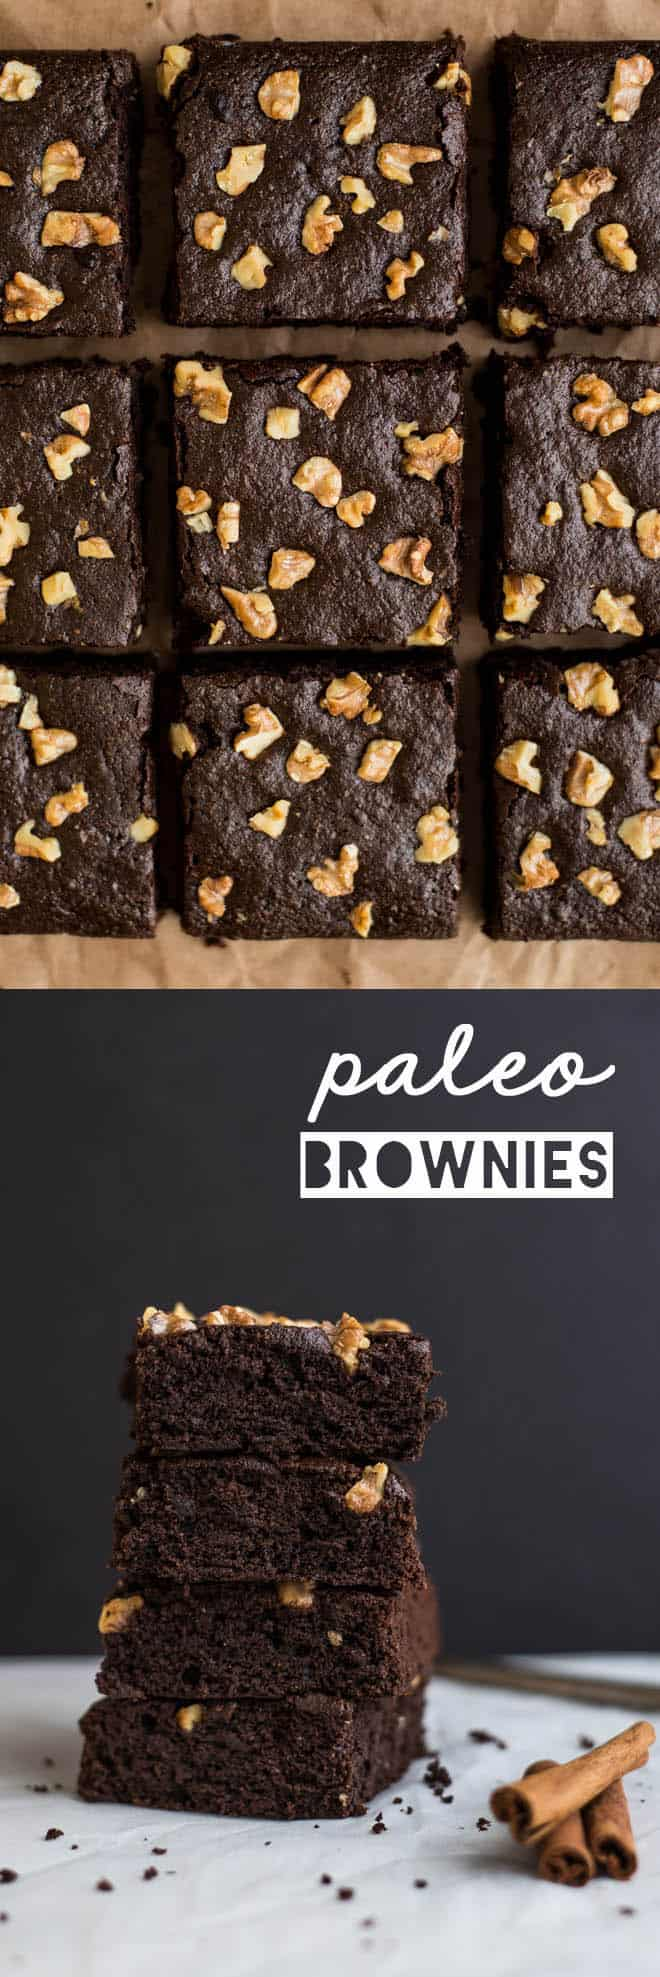 Spiced Paleo Brownies - super easy dessert that's naturally sweetened and gluten free! by Lisa Lin of healthynibblesandbits.com